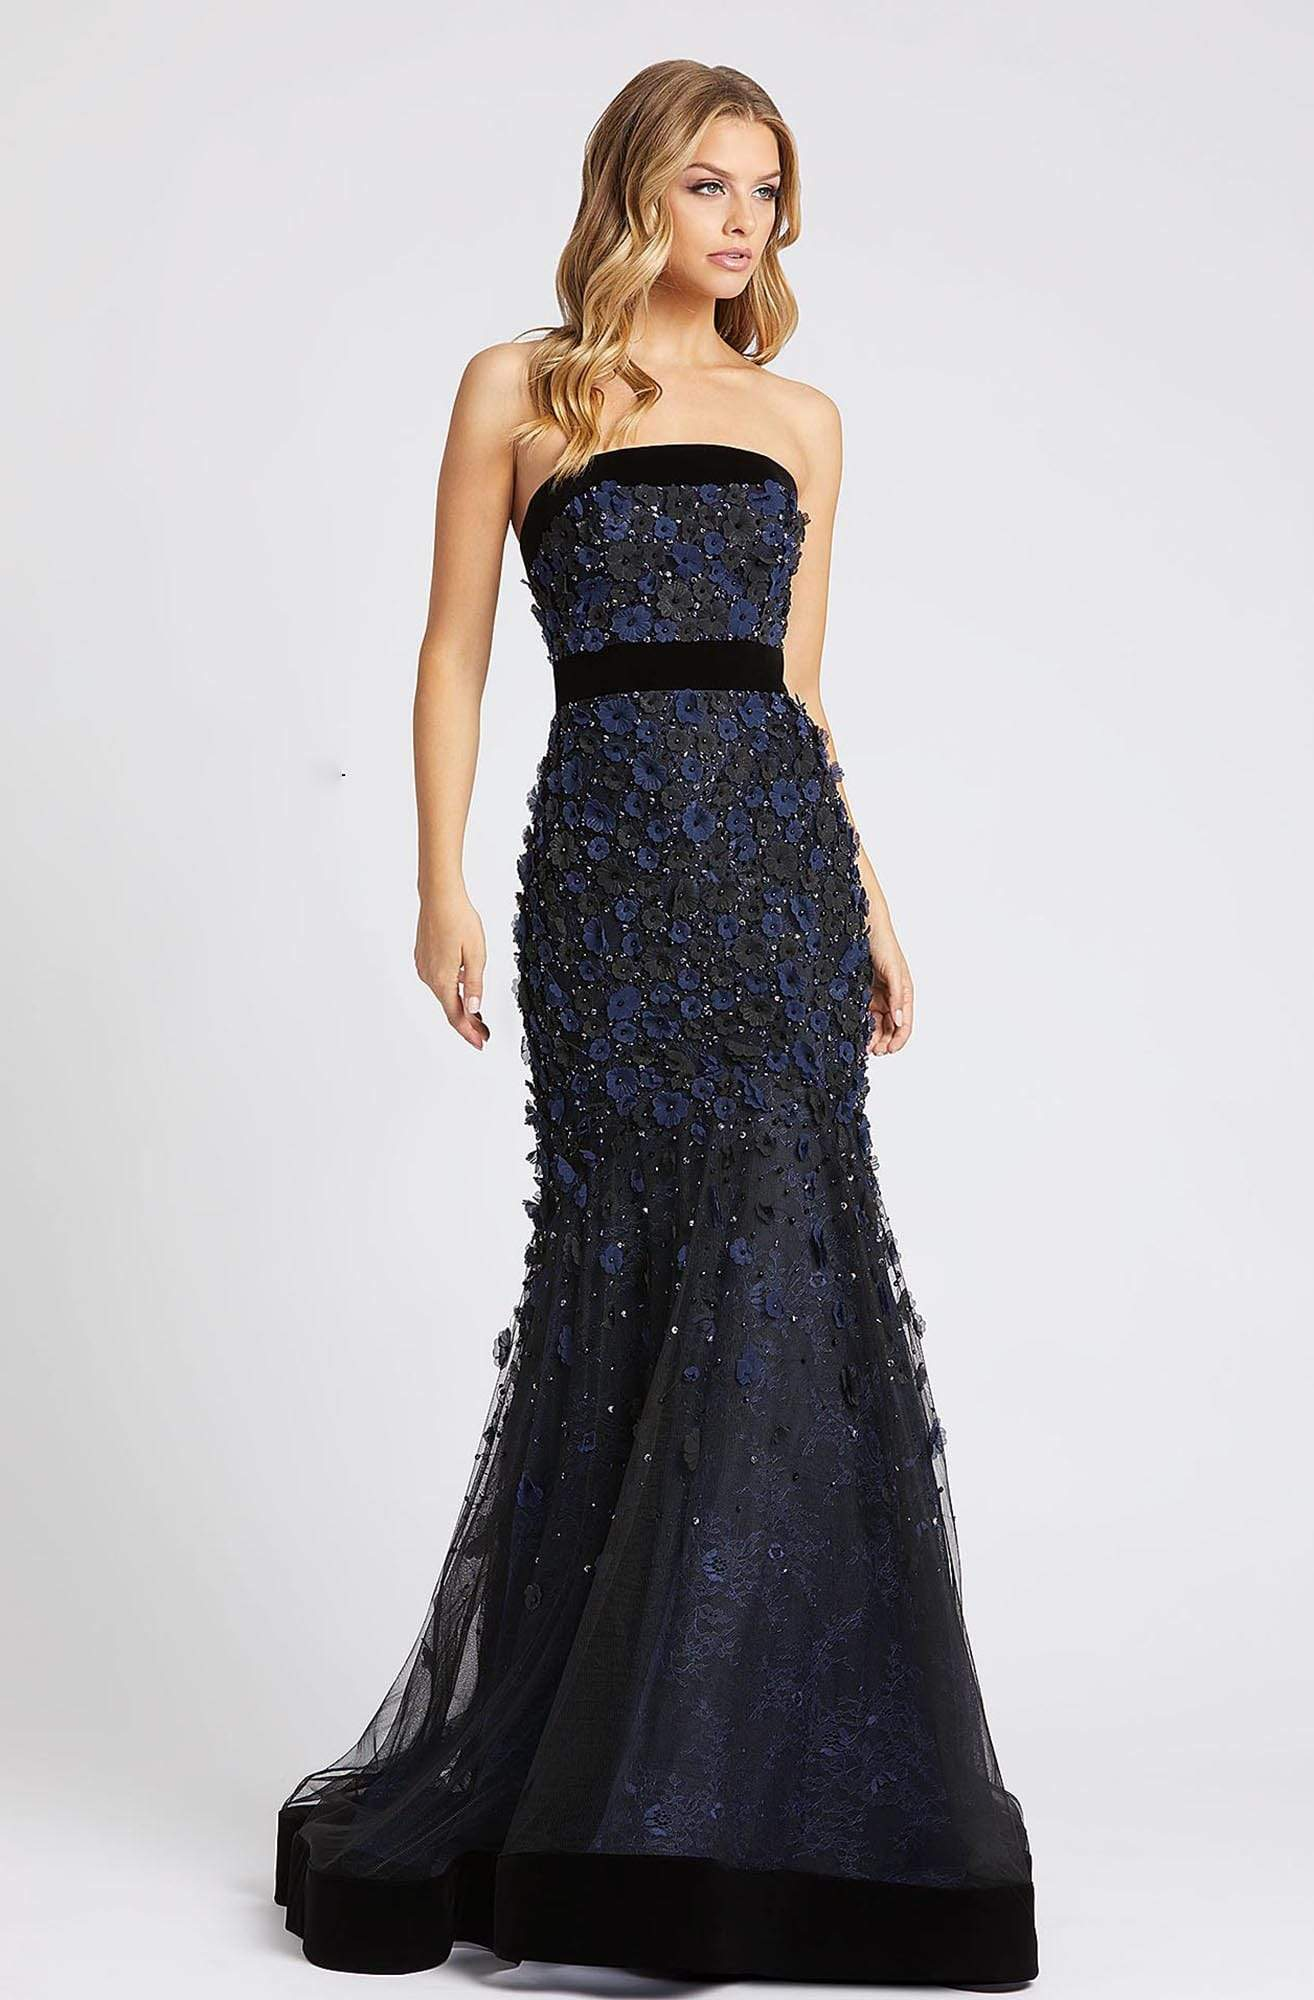 Mac Duggal Evening - 67293D Floral Applique Strapless Trumpet Dress Evening Dresses 0 / Midnight / Black